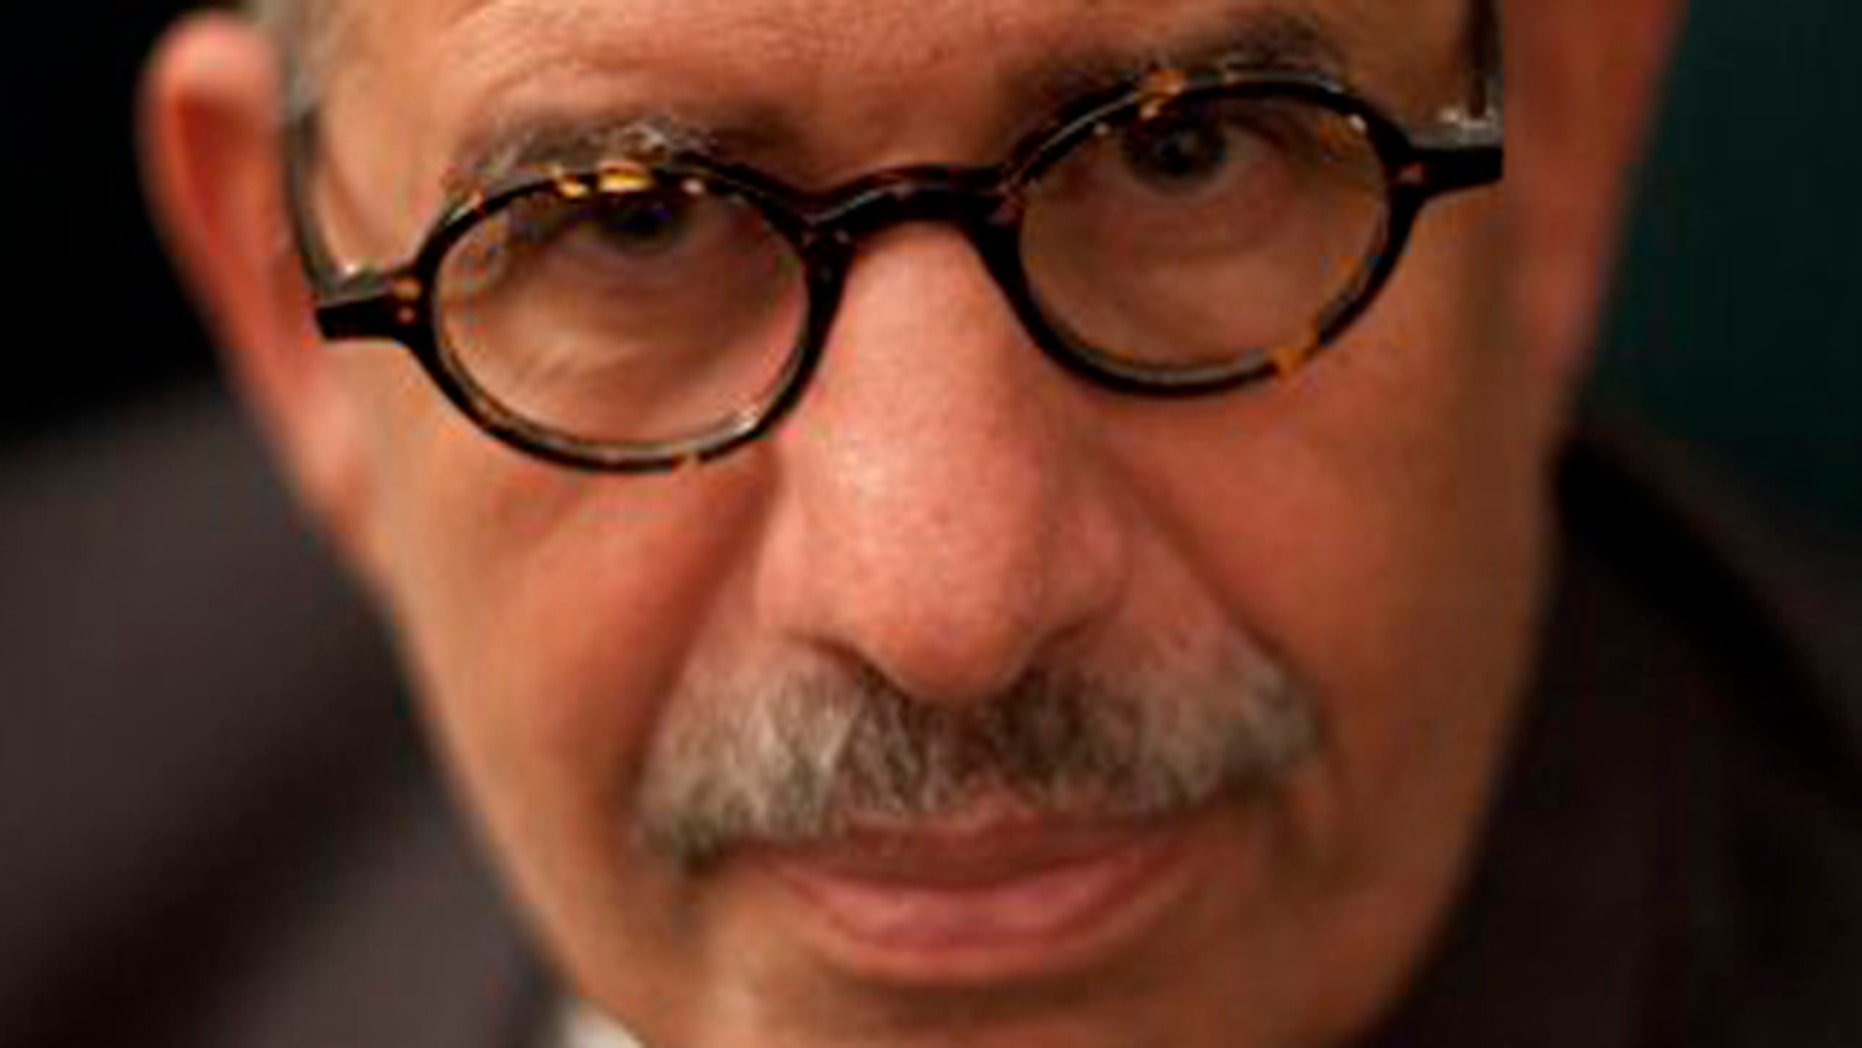 December 4, 2011: Pro-reform leader and Nobel peace laureate Mohamed ElBaradei poses for a portrait during an interview with The Associated Press in his home in Giza, on the outskirts of Cairo, Egypt.